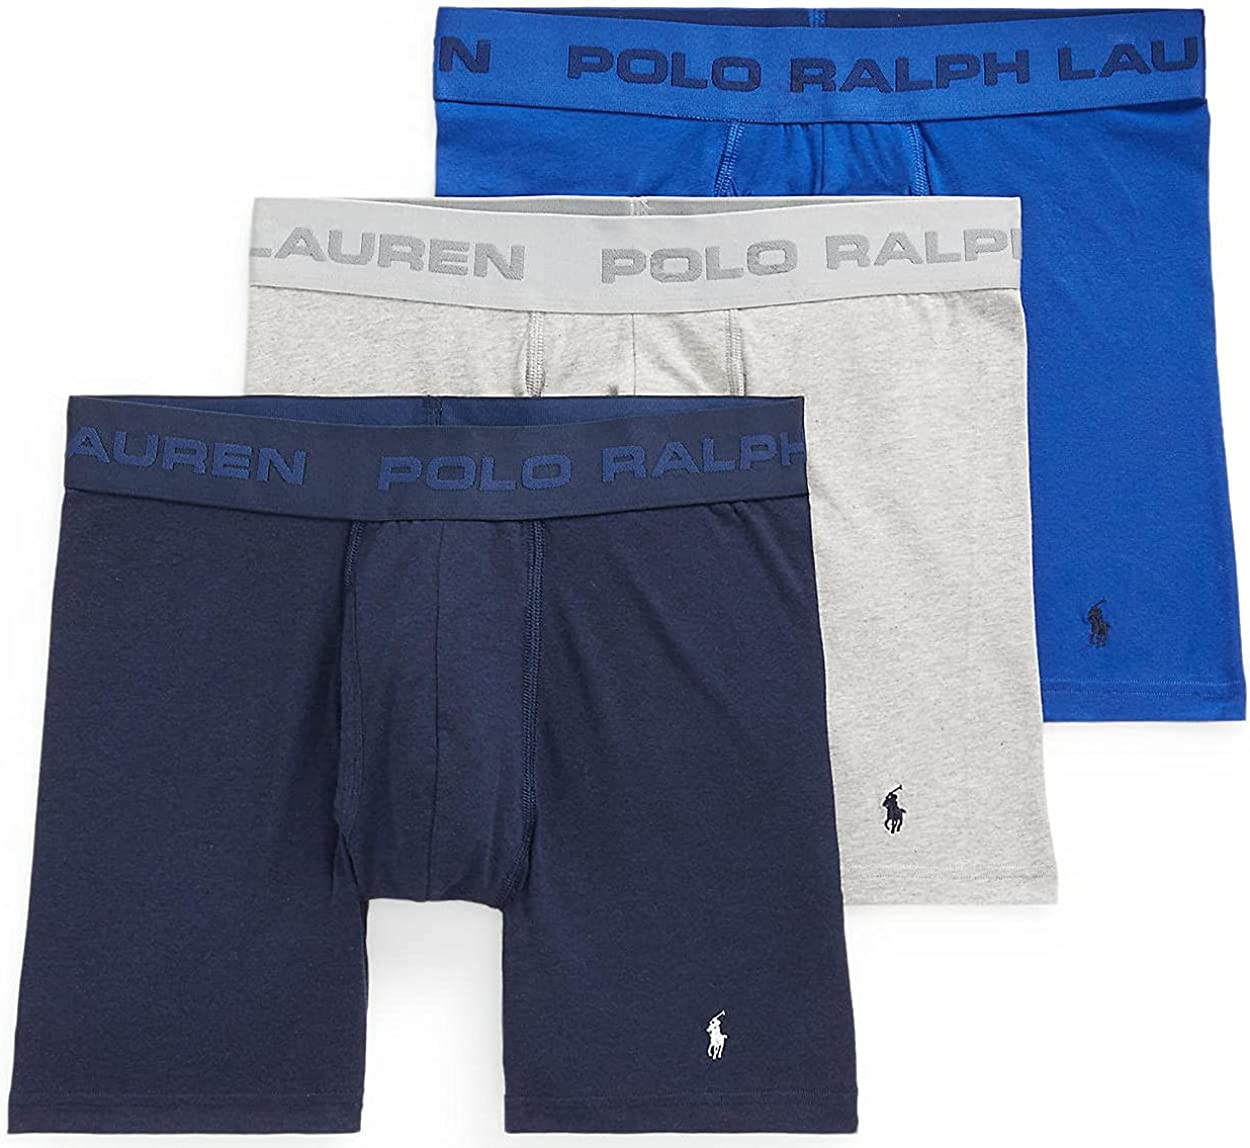 Polo Ralph Lauren Freedom FX: Friction Free Pouch Boxer Brief